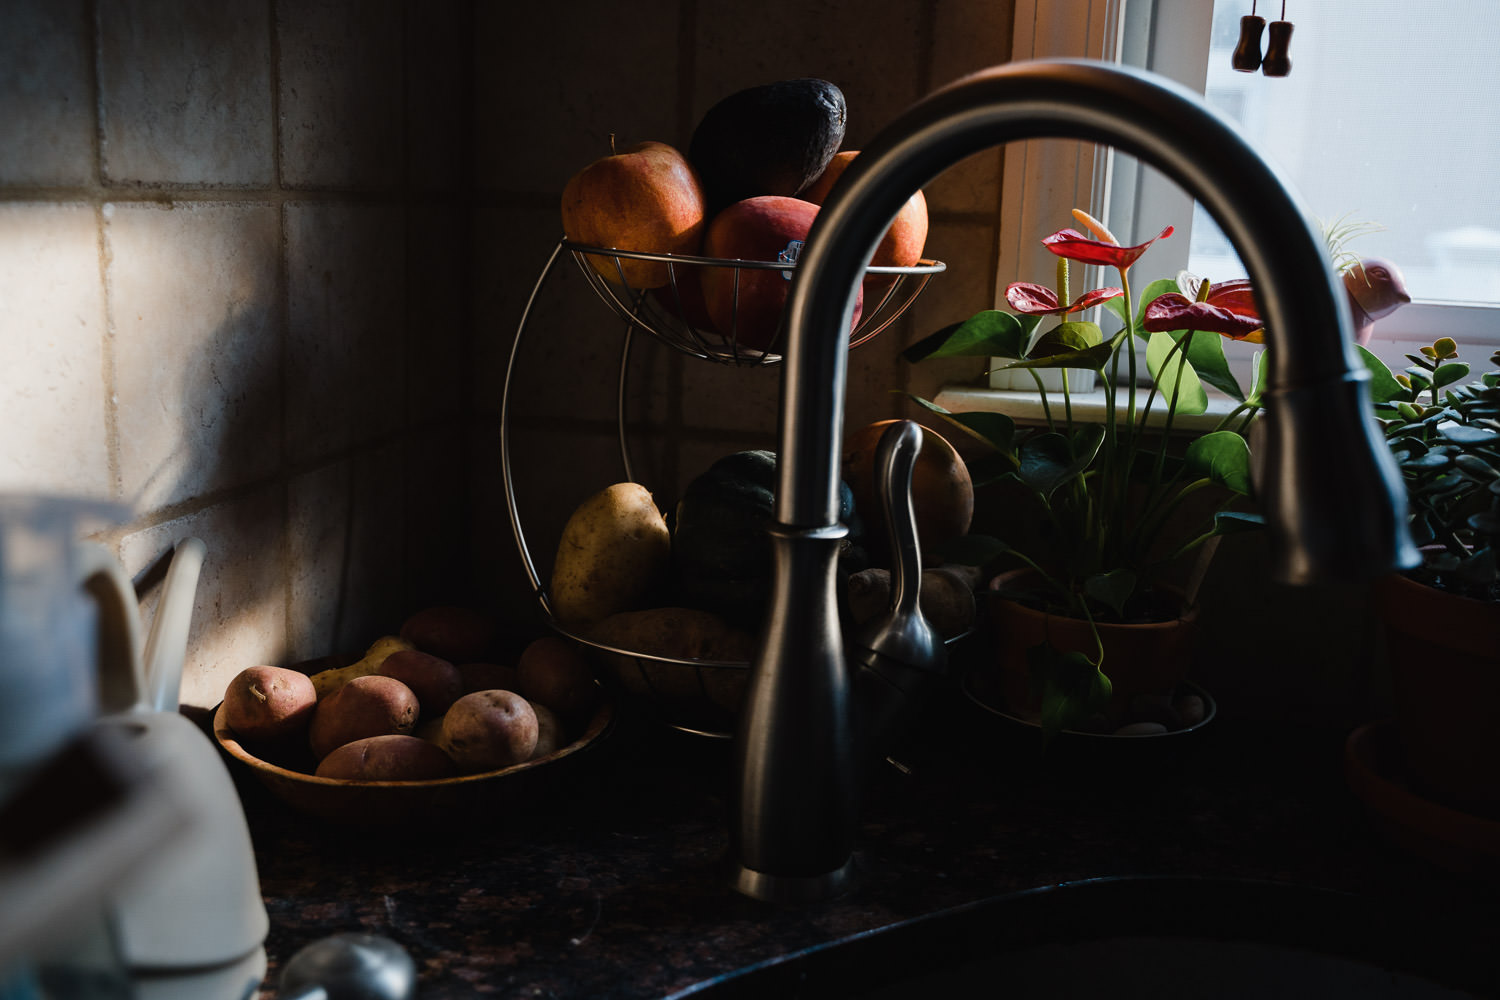 Still life of fruit in a kitchen.